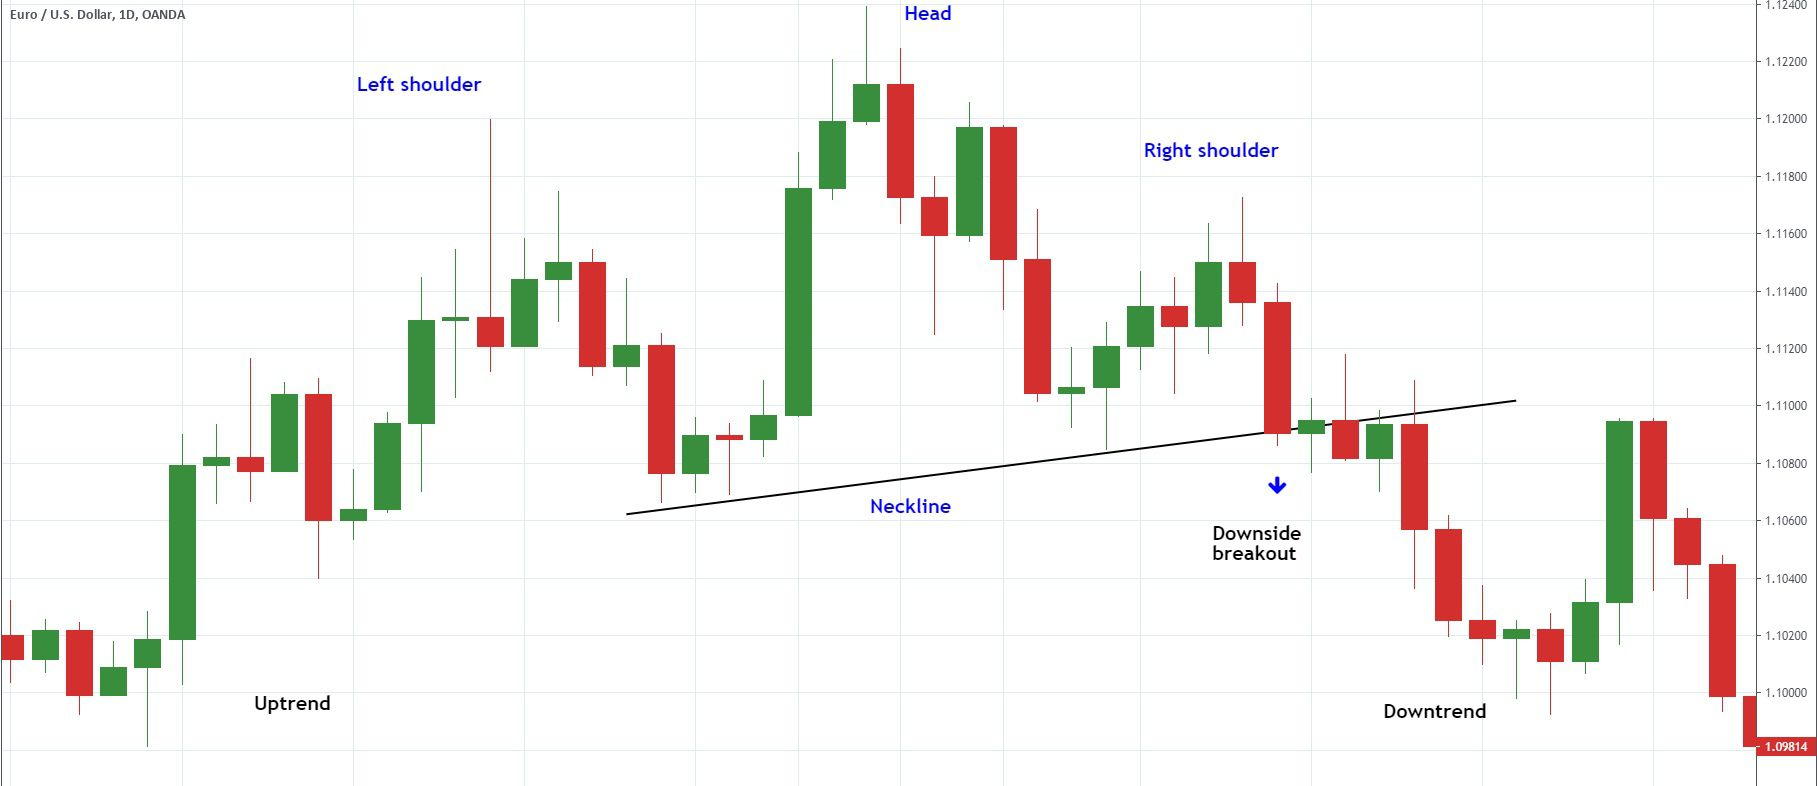 Head and shoulder chart formation example in EURUSD